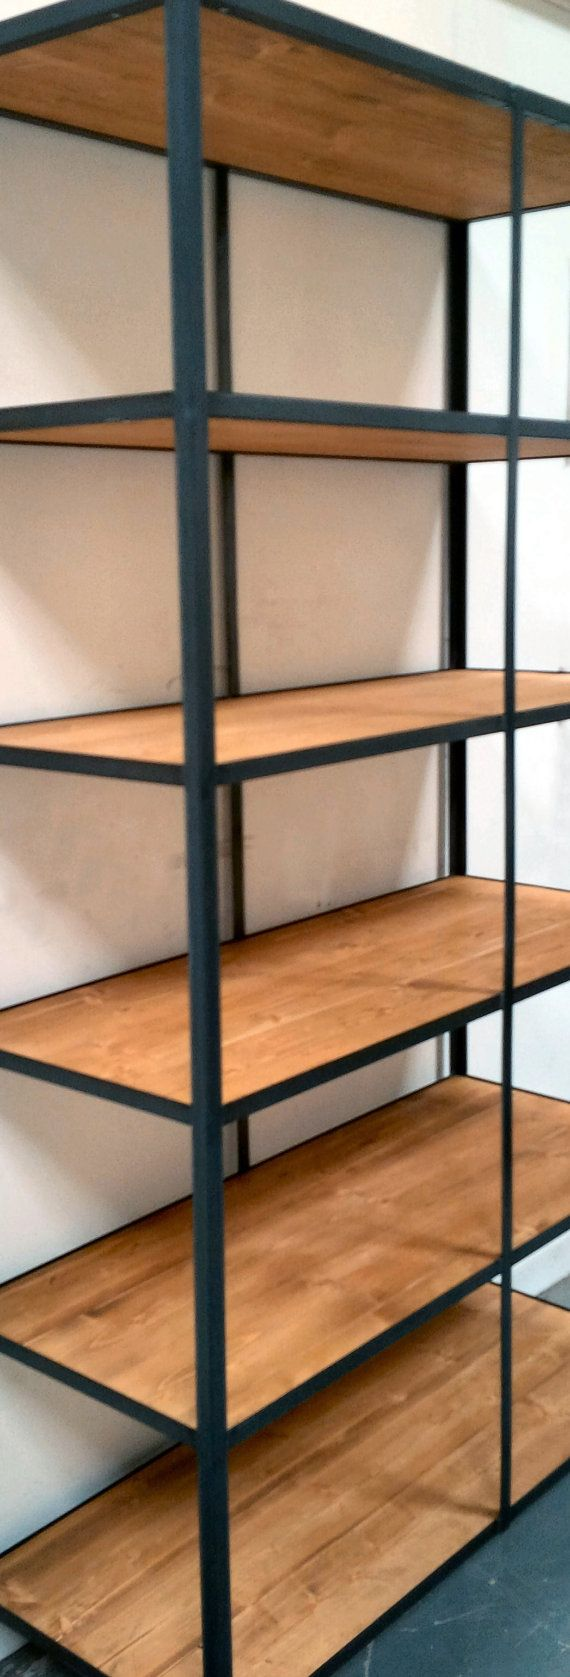 Industrial Style Shelving Unit By Ppmwoodshop On Etsy